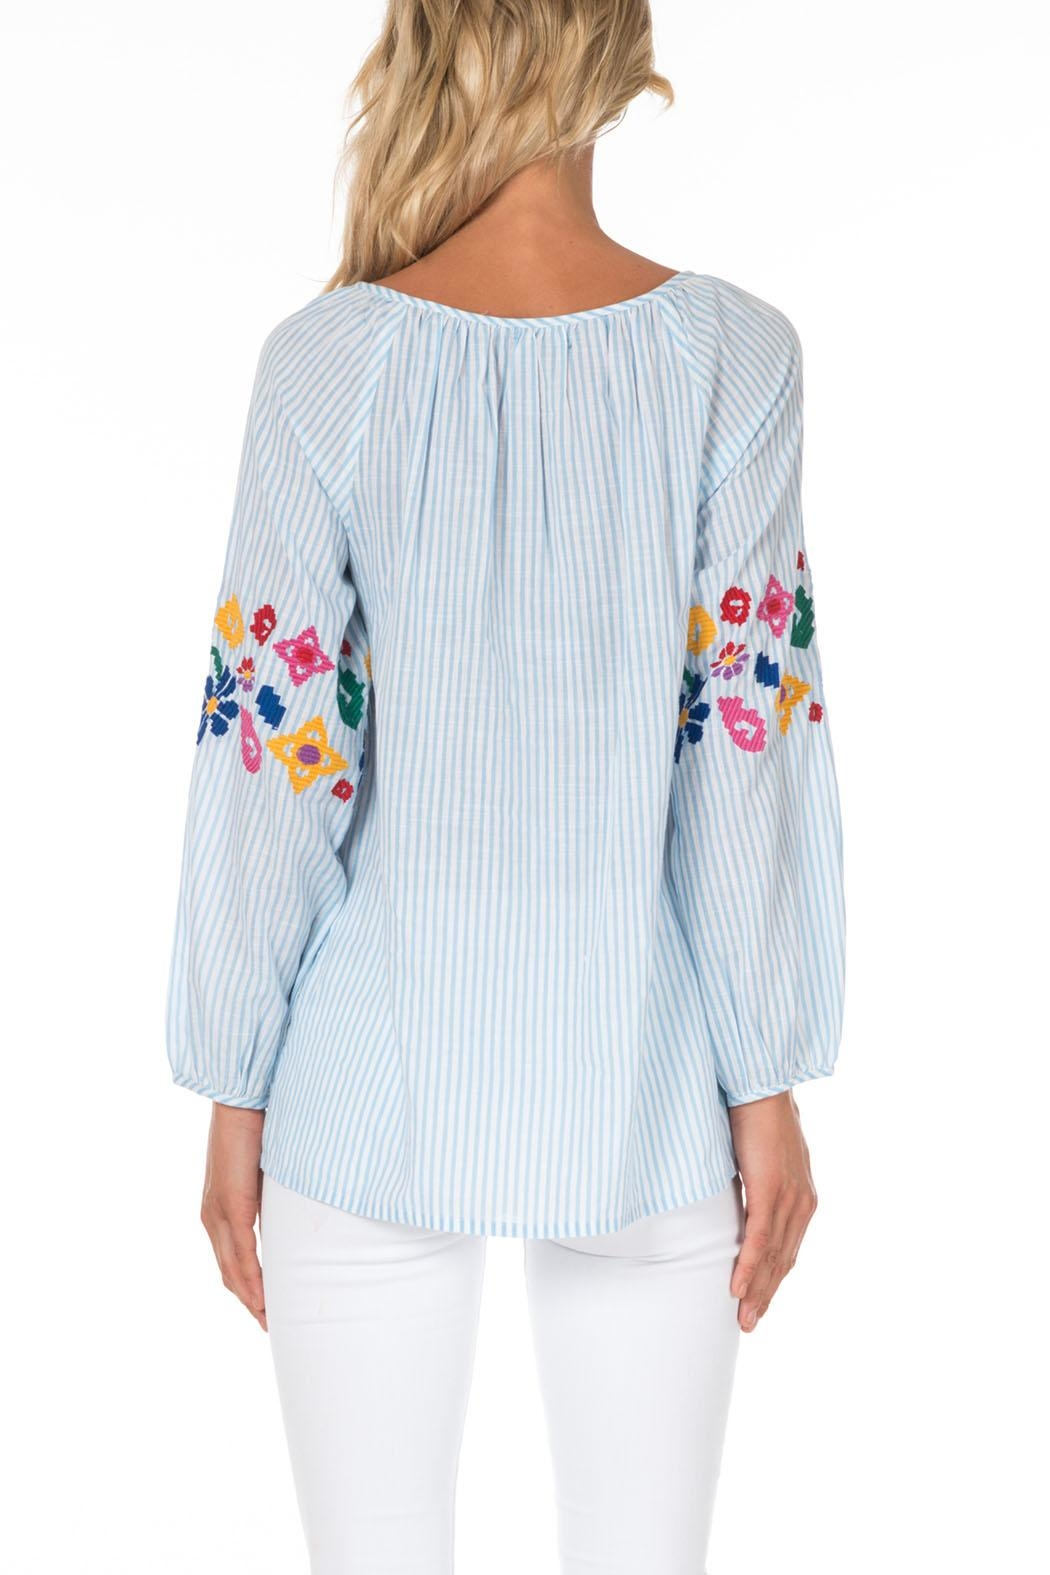 Tolani Marie Top - Front Full Image